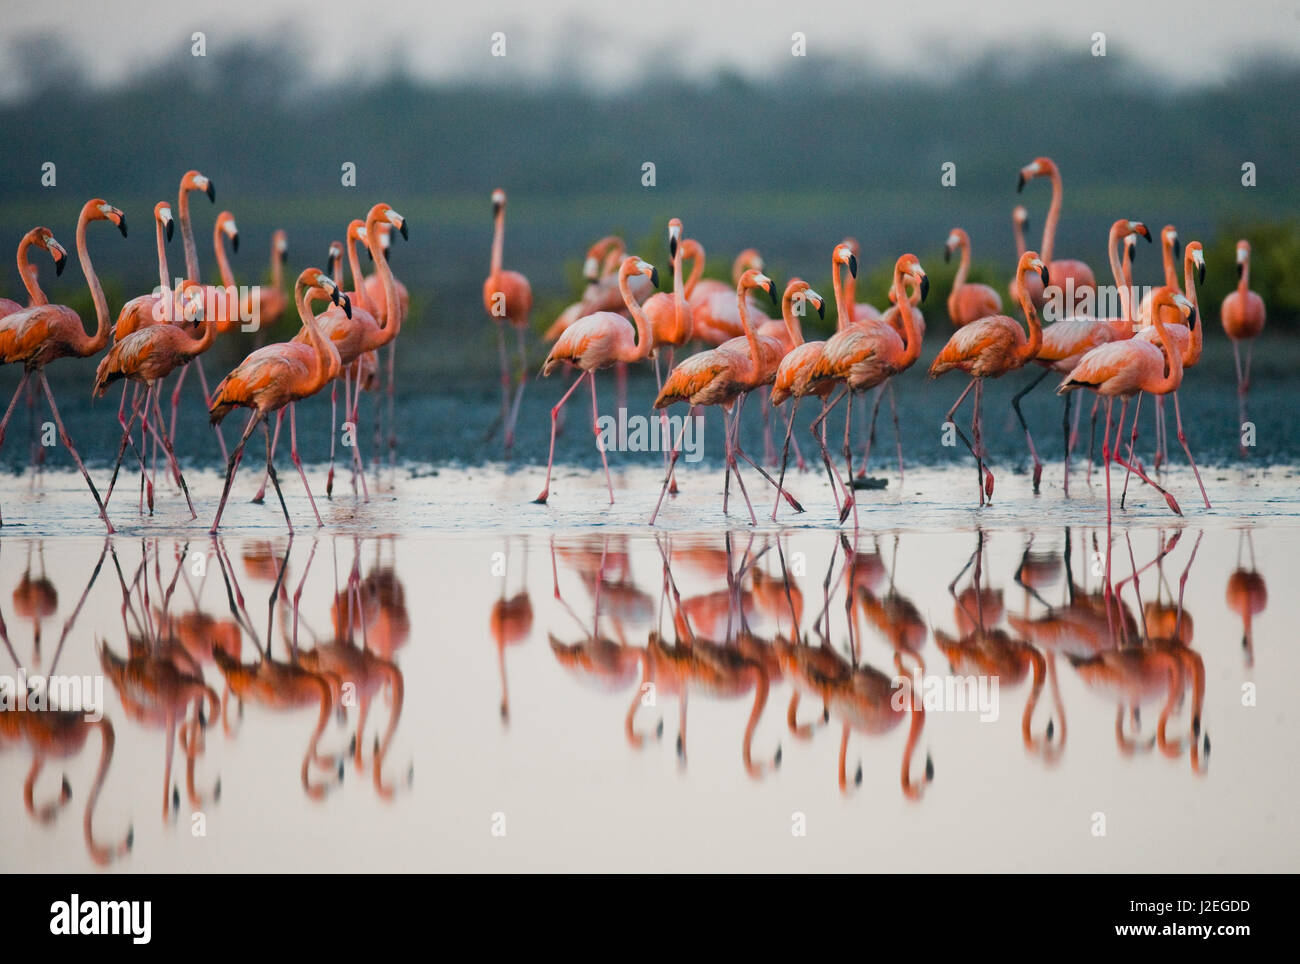 Caribbean flamingo standing in water with reflection. Cuba. An excellent illustration. - Stock Image